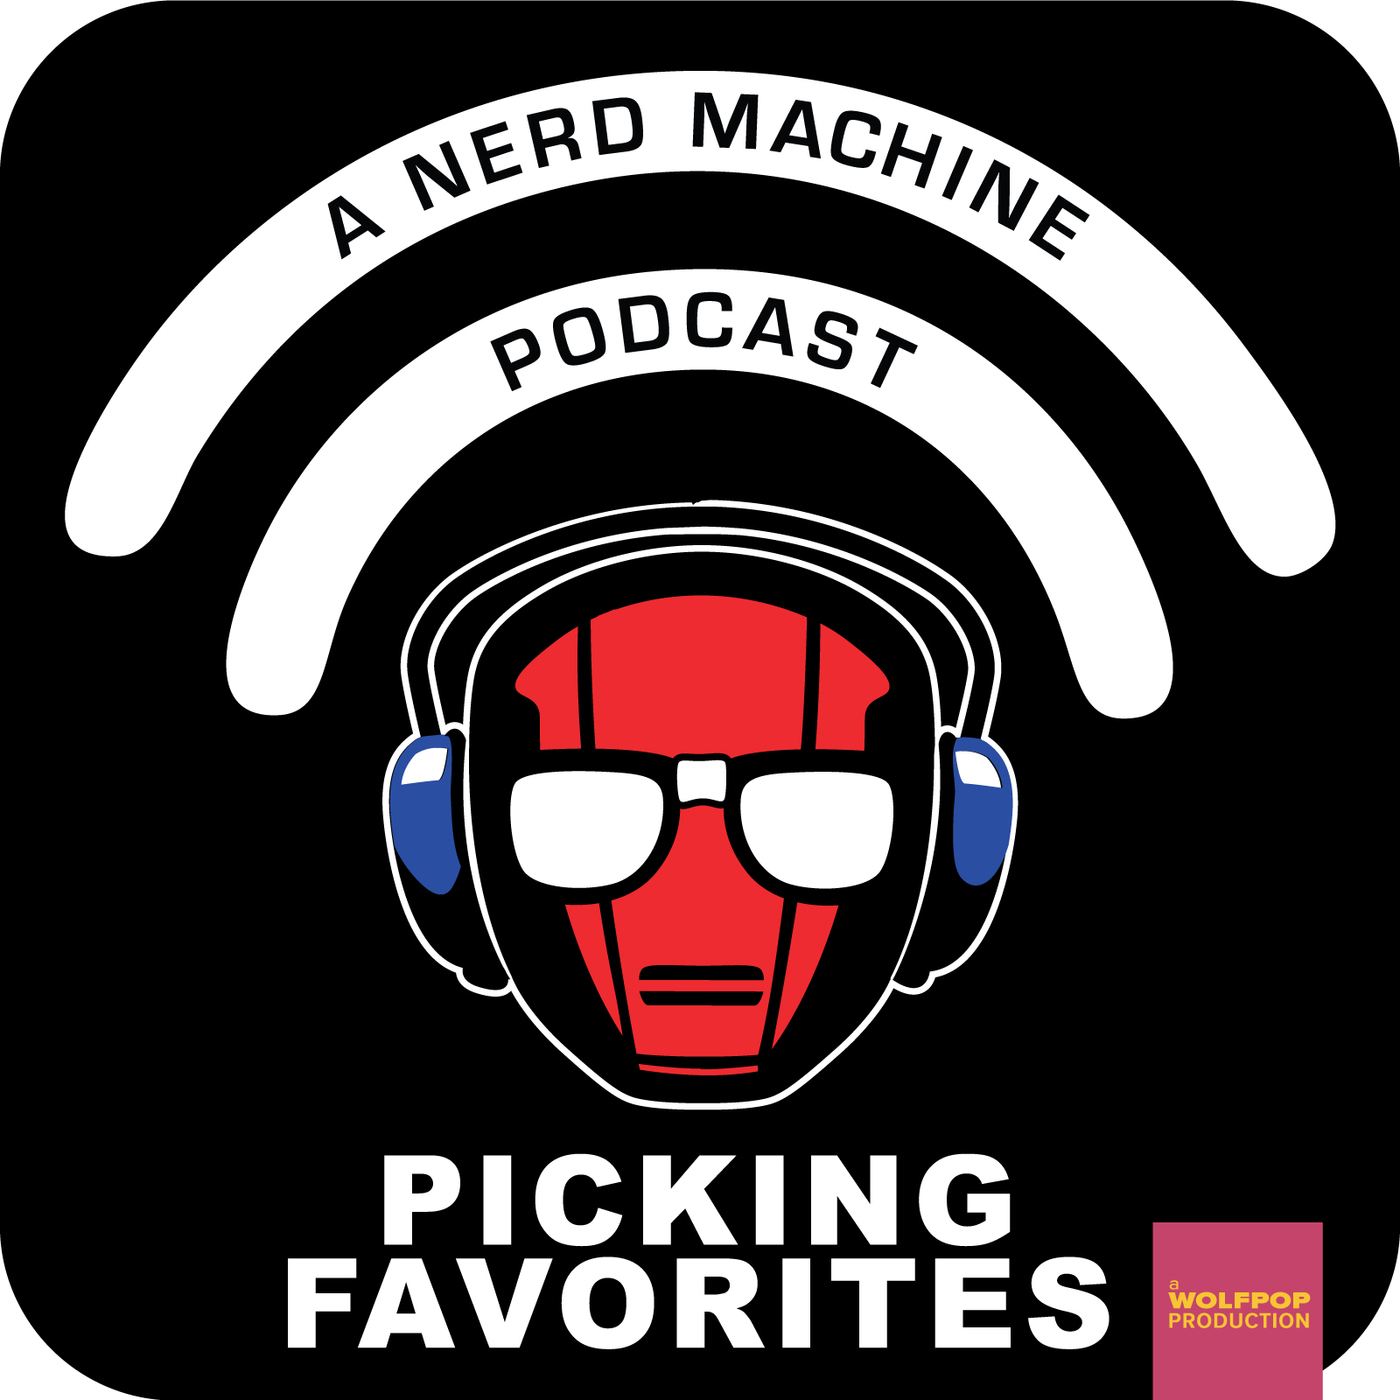 Nerd Machine's Picking Favorites